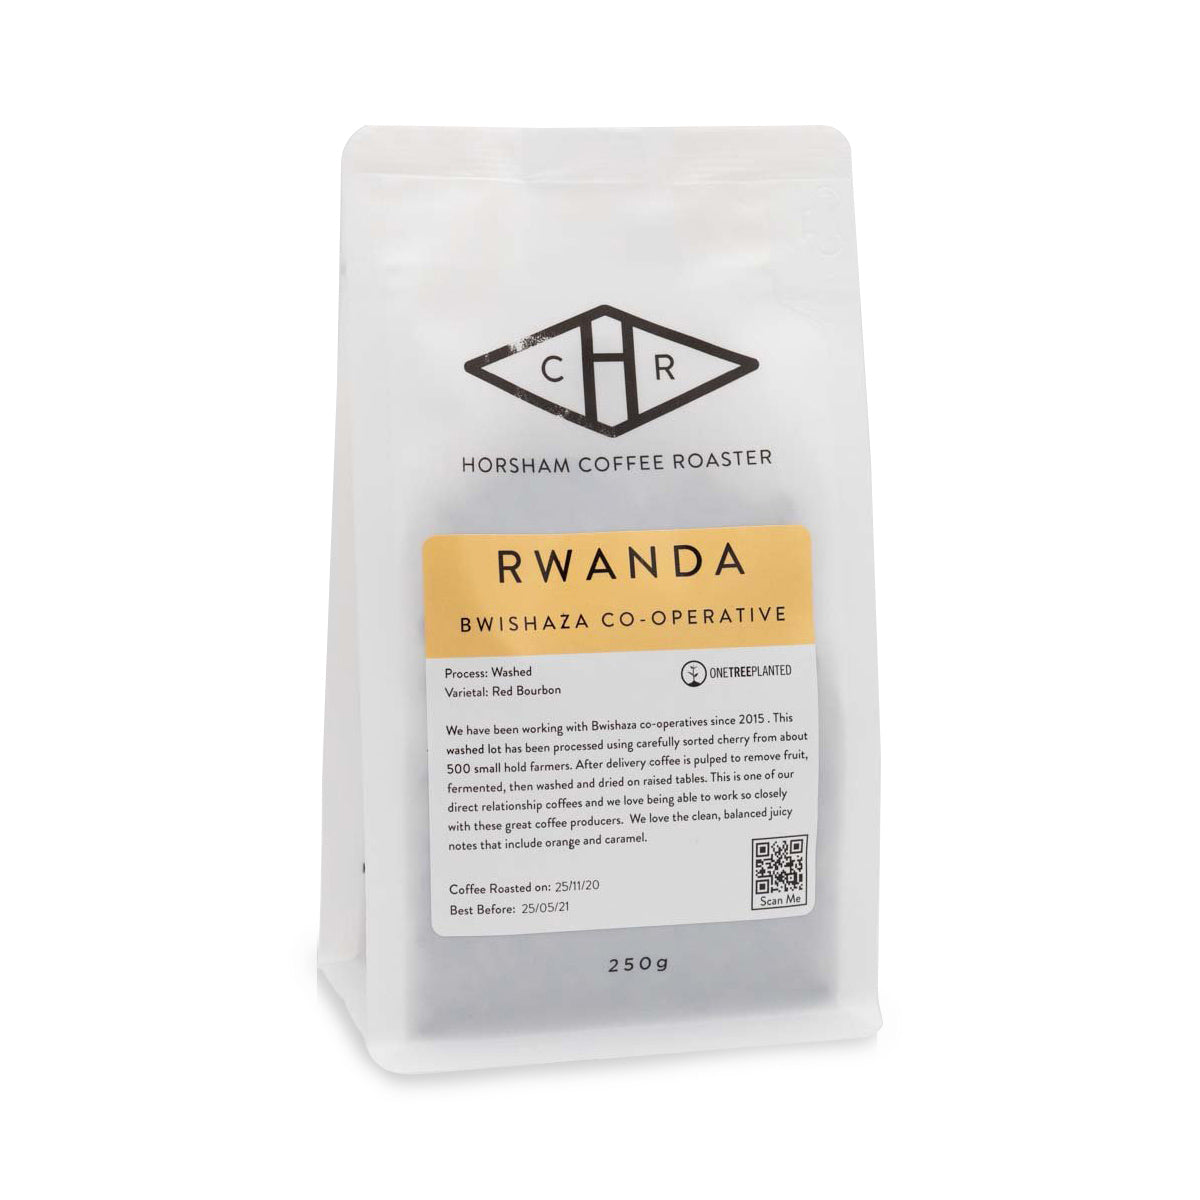 Horsham Coffee Roaster - Rwanda Filter Coffee Beans - Bwishaza Lot 6 Washed - 250g